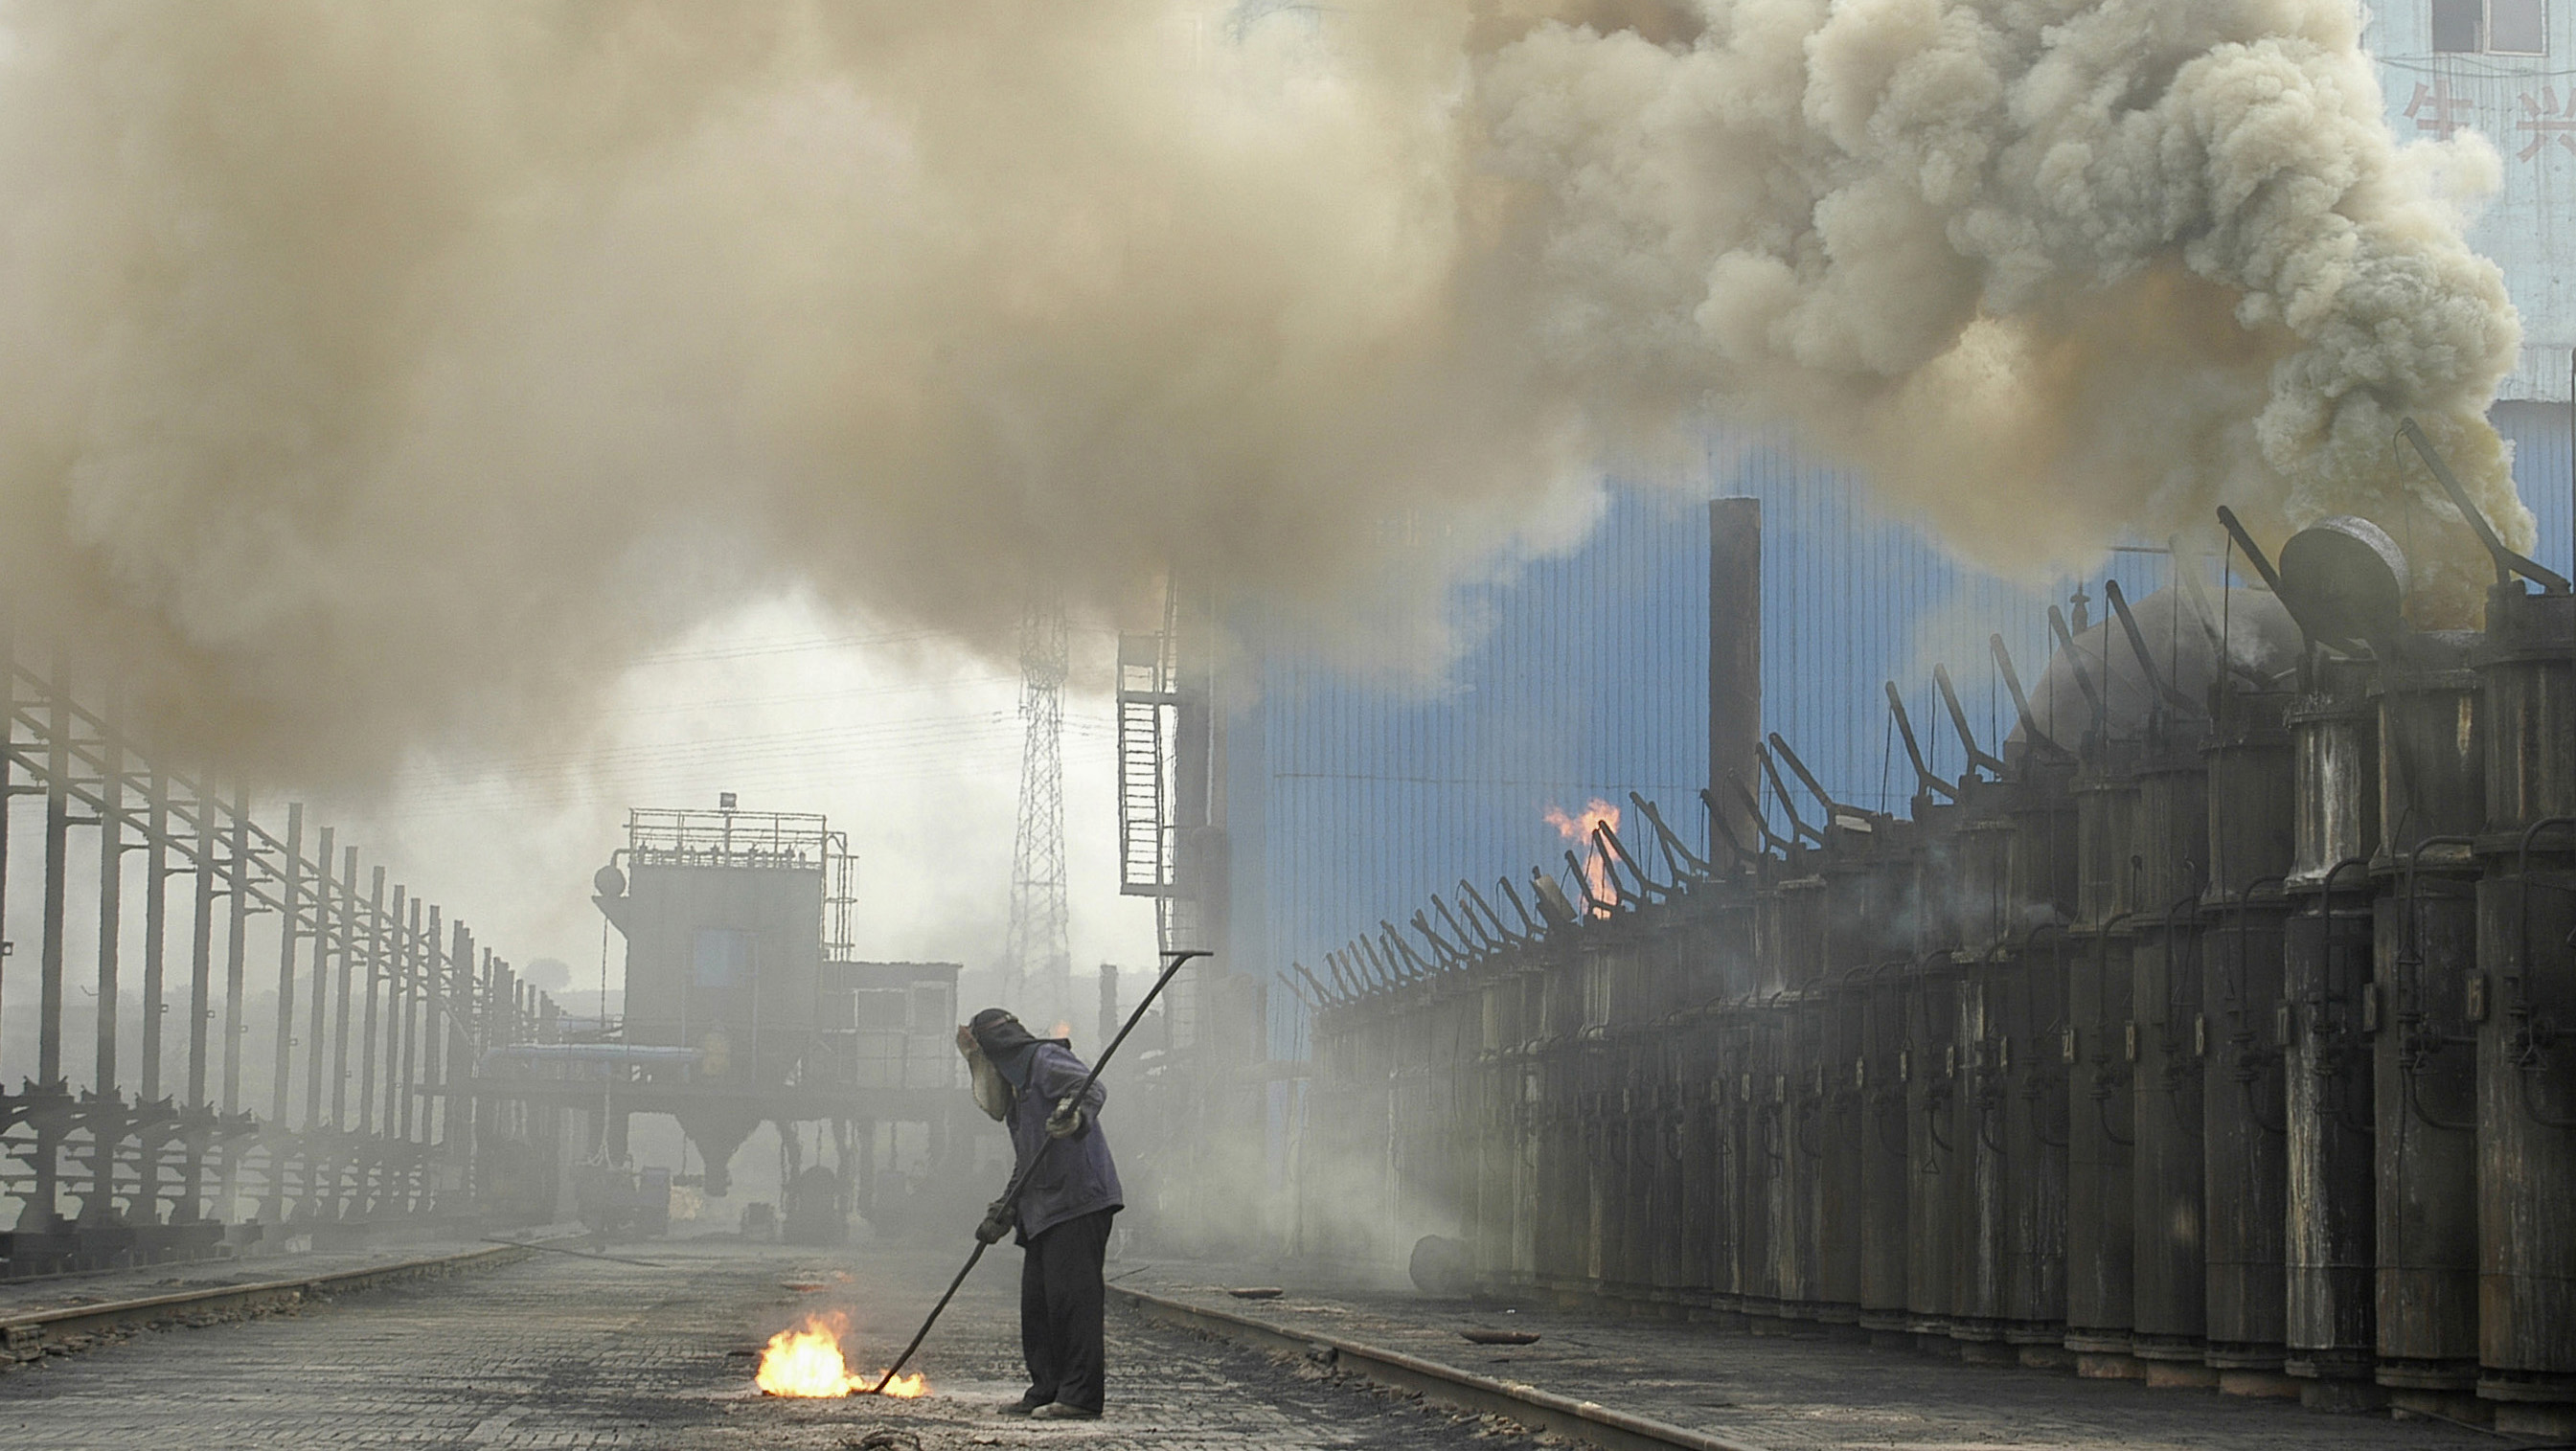 A labourer works at a coking plant in Changzhi, north China's Shanxi province, July 7, 2007. Starting off in Sydney on Saturday and travelling west around the world, the Live Earth concerts, planned for this weekend, are expected to attract more than a million people to raise awareness of global warming and environmental issues like climate change. REUTERS/Stringer (CHINA) CHINA OUT - GM1DVQNFJGAA